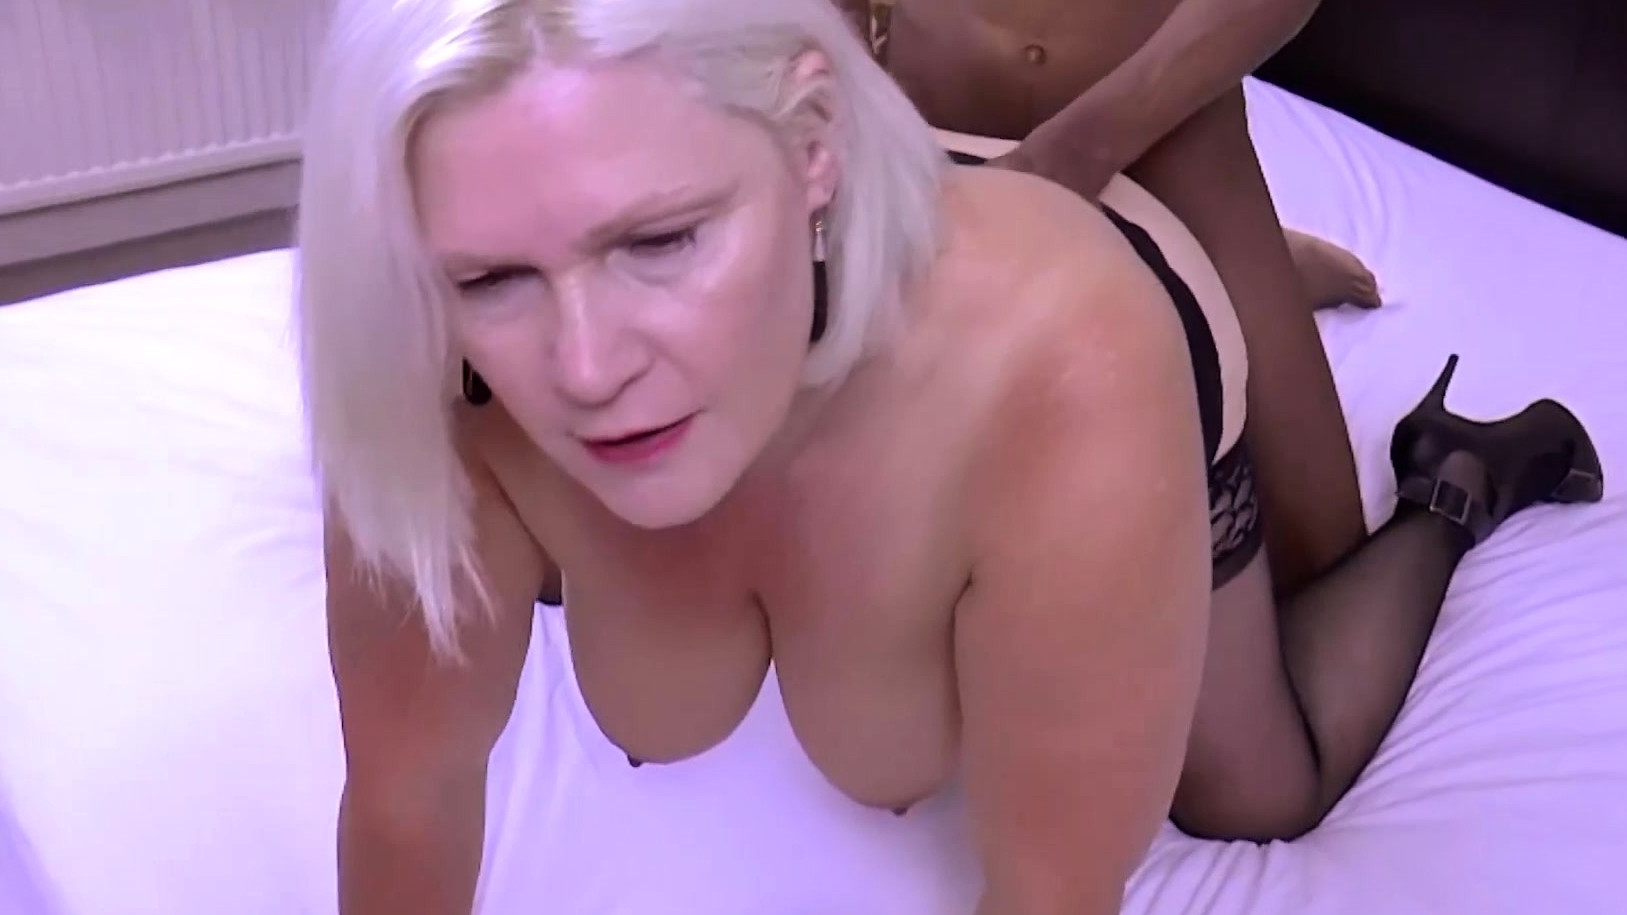 Grannylovesblack - You Cant Go Wrong With Big Black Dong